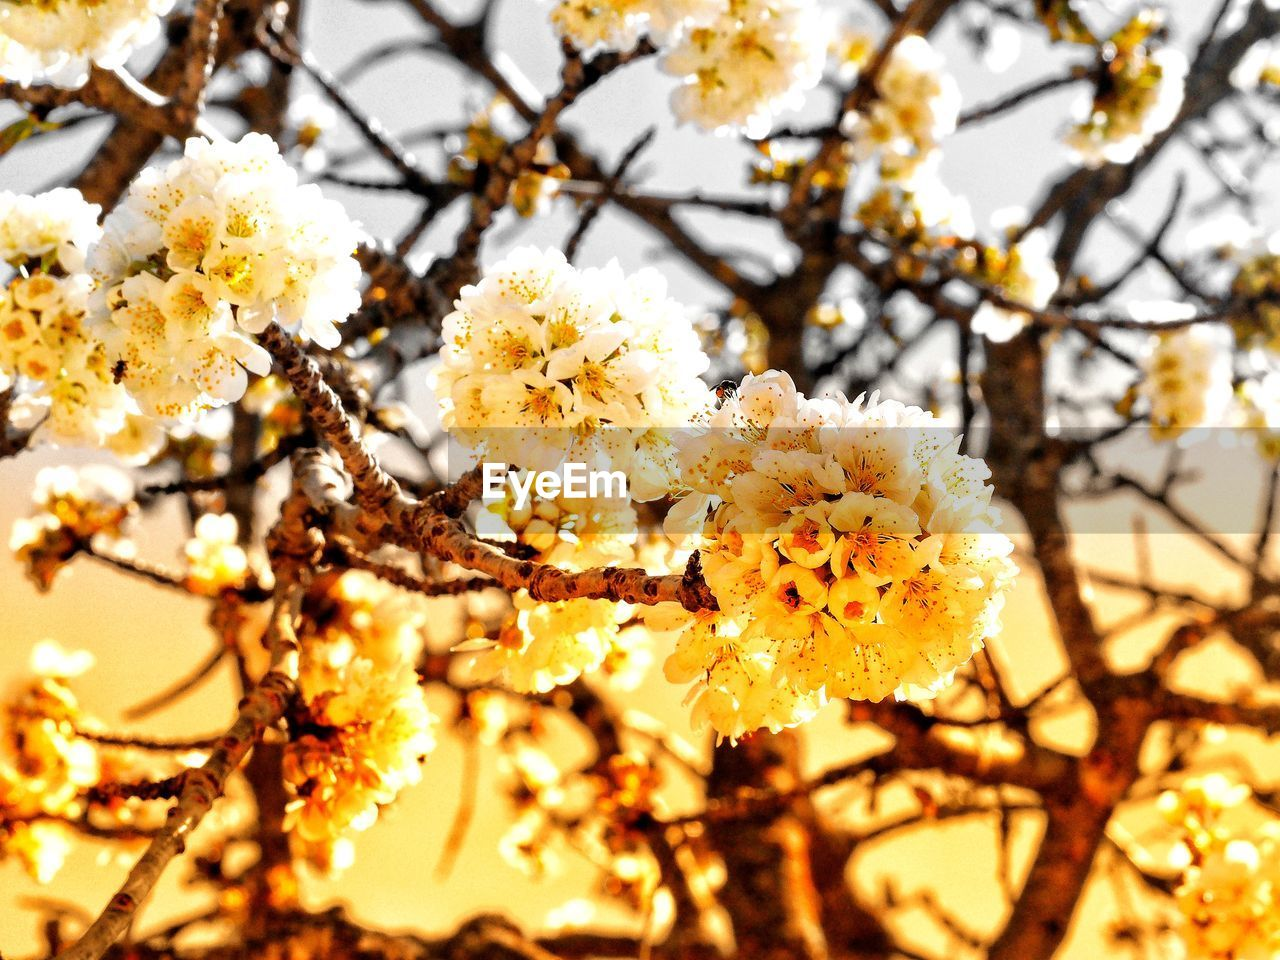 flower, flowering plant, plant, growth, fragility, freshness, beauty in nature, vulnerability, springtime, blossom, tree, branch, close-up, nature, white color, no people, focus on foreground, day, inflorescence, flower head, cherry blossom, outdoors, cherry tree, spring